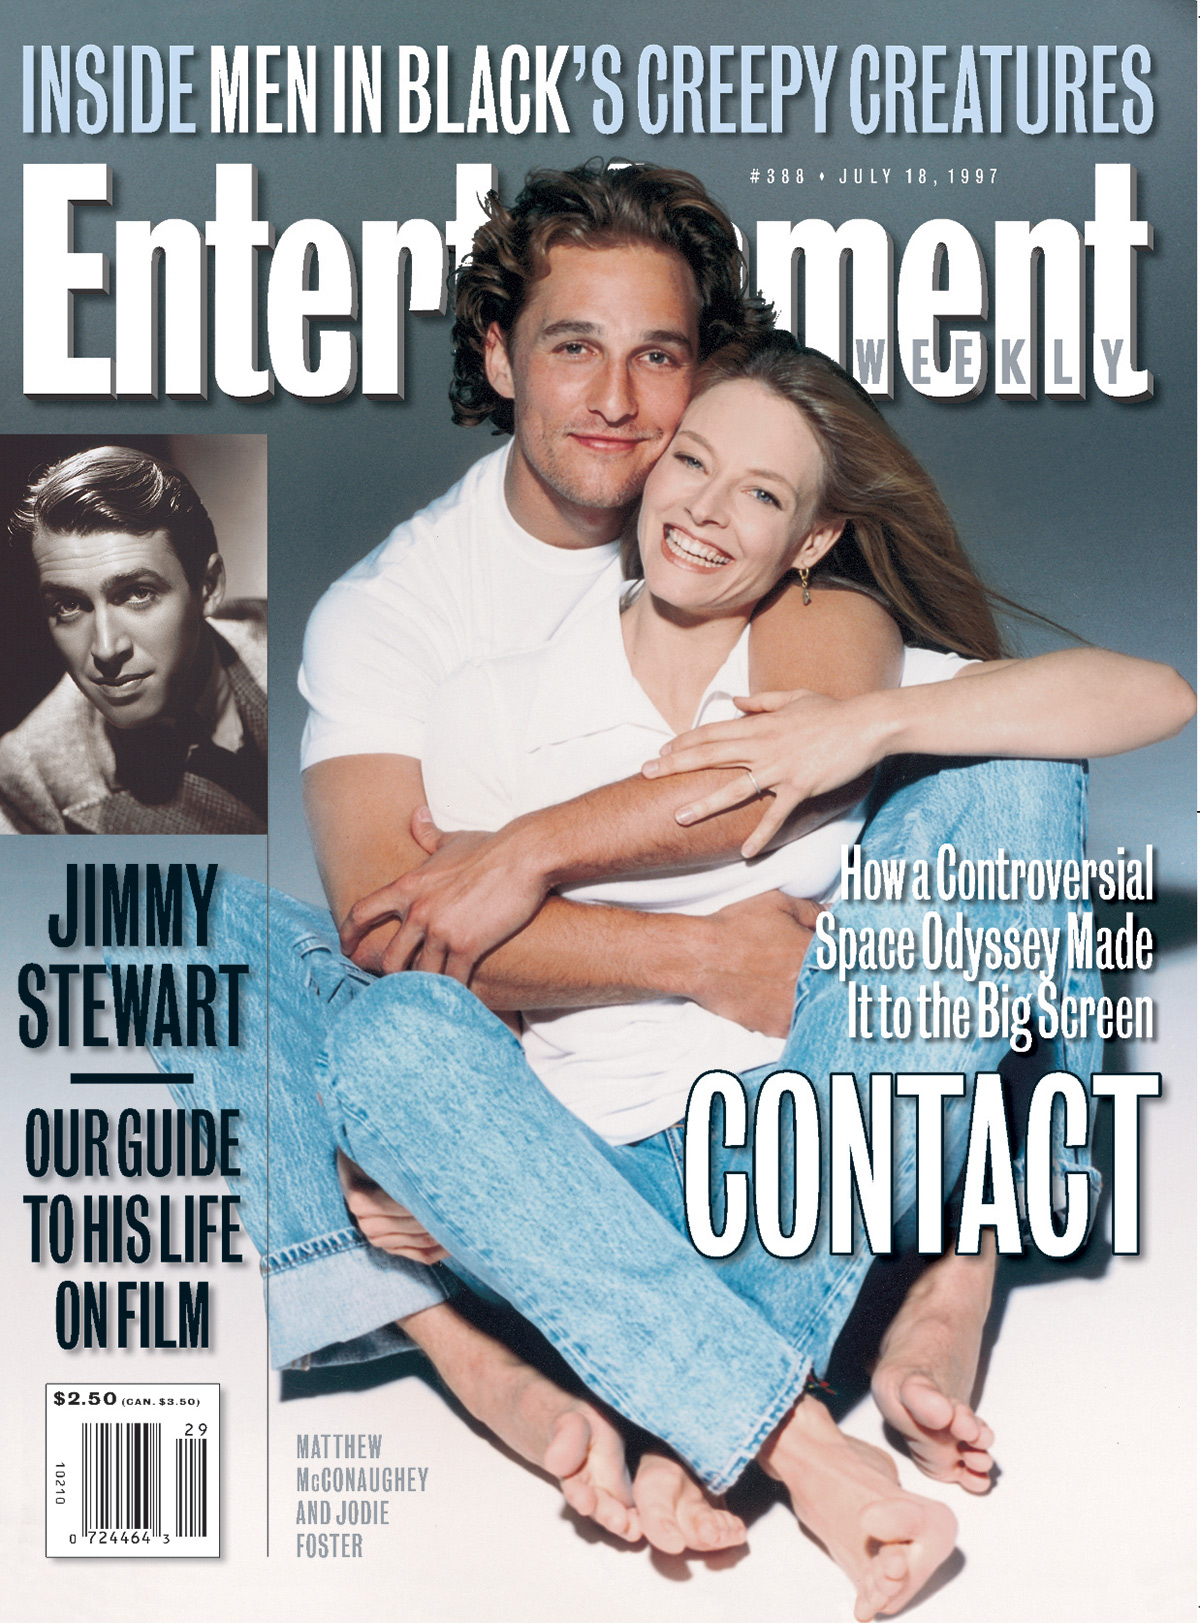 Entertainment WeeklyMatthew Mcconaughey, Jodie FosterJuly 18, 1997# 388